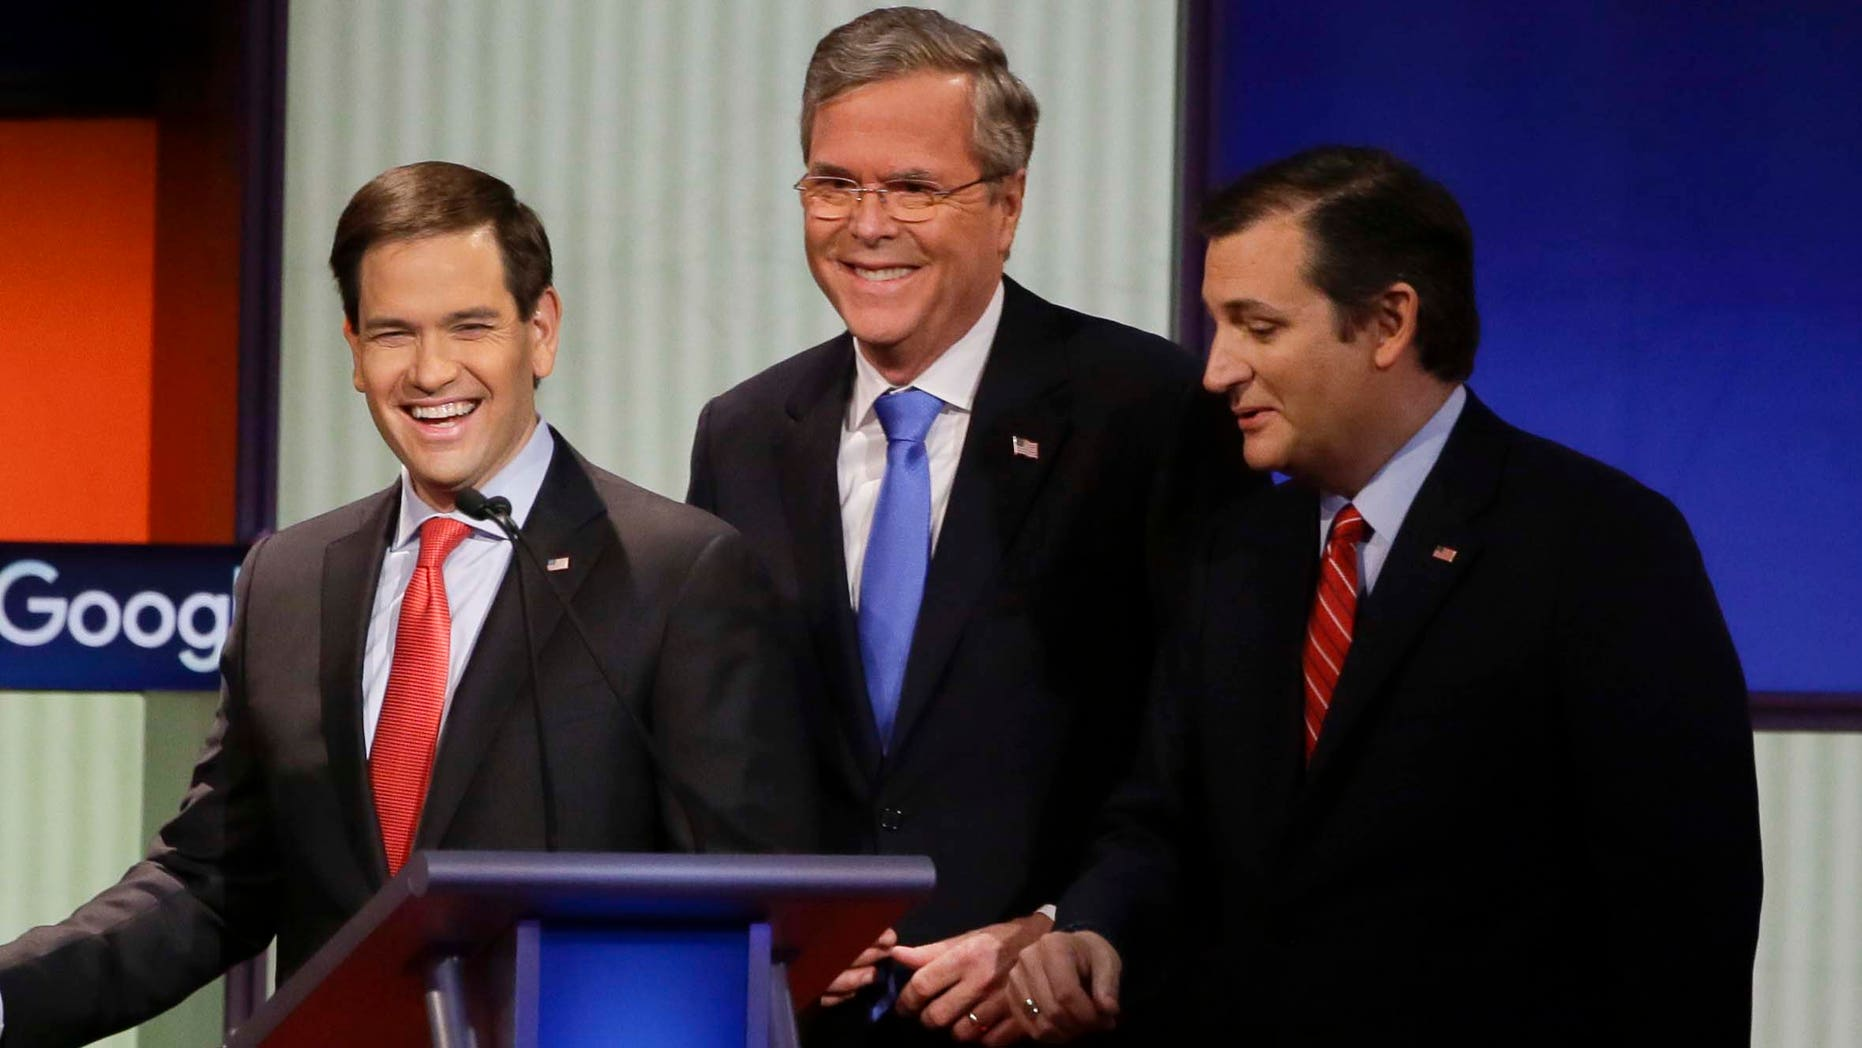 Republican presidential candidates (L-R) New Jersey Gov. Chris Christie, Sen. Marco Rubio, R-Fla., former Florida Gov. Jeb Bush and Sen. Ted Cruz, R-Texas, talk after the Republican presidential primary debate, Thursday, Jan. 28, 2016, in Des Moines, Iowa. (AP Photo/Charlie Neibergall)